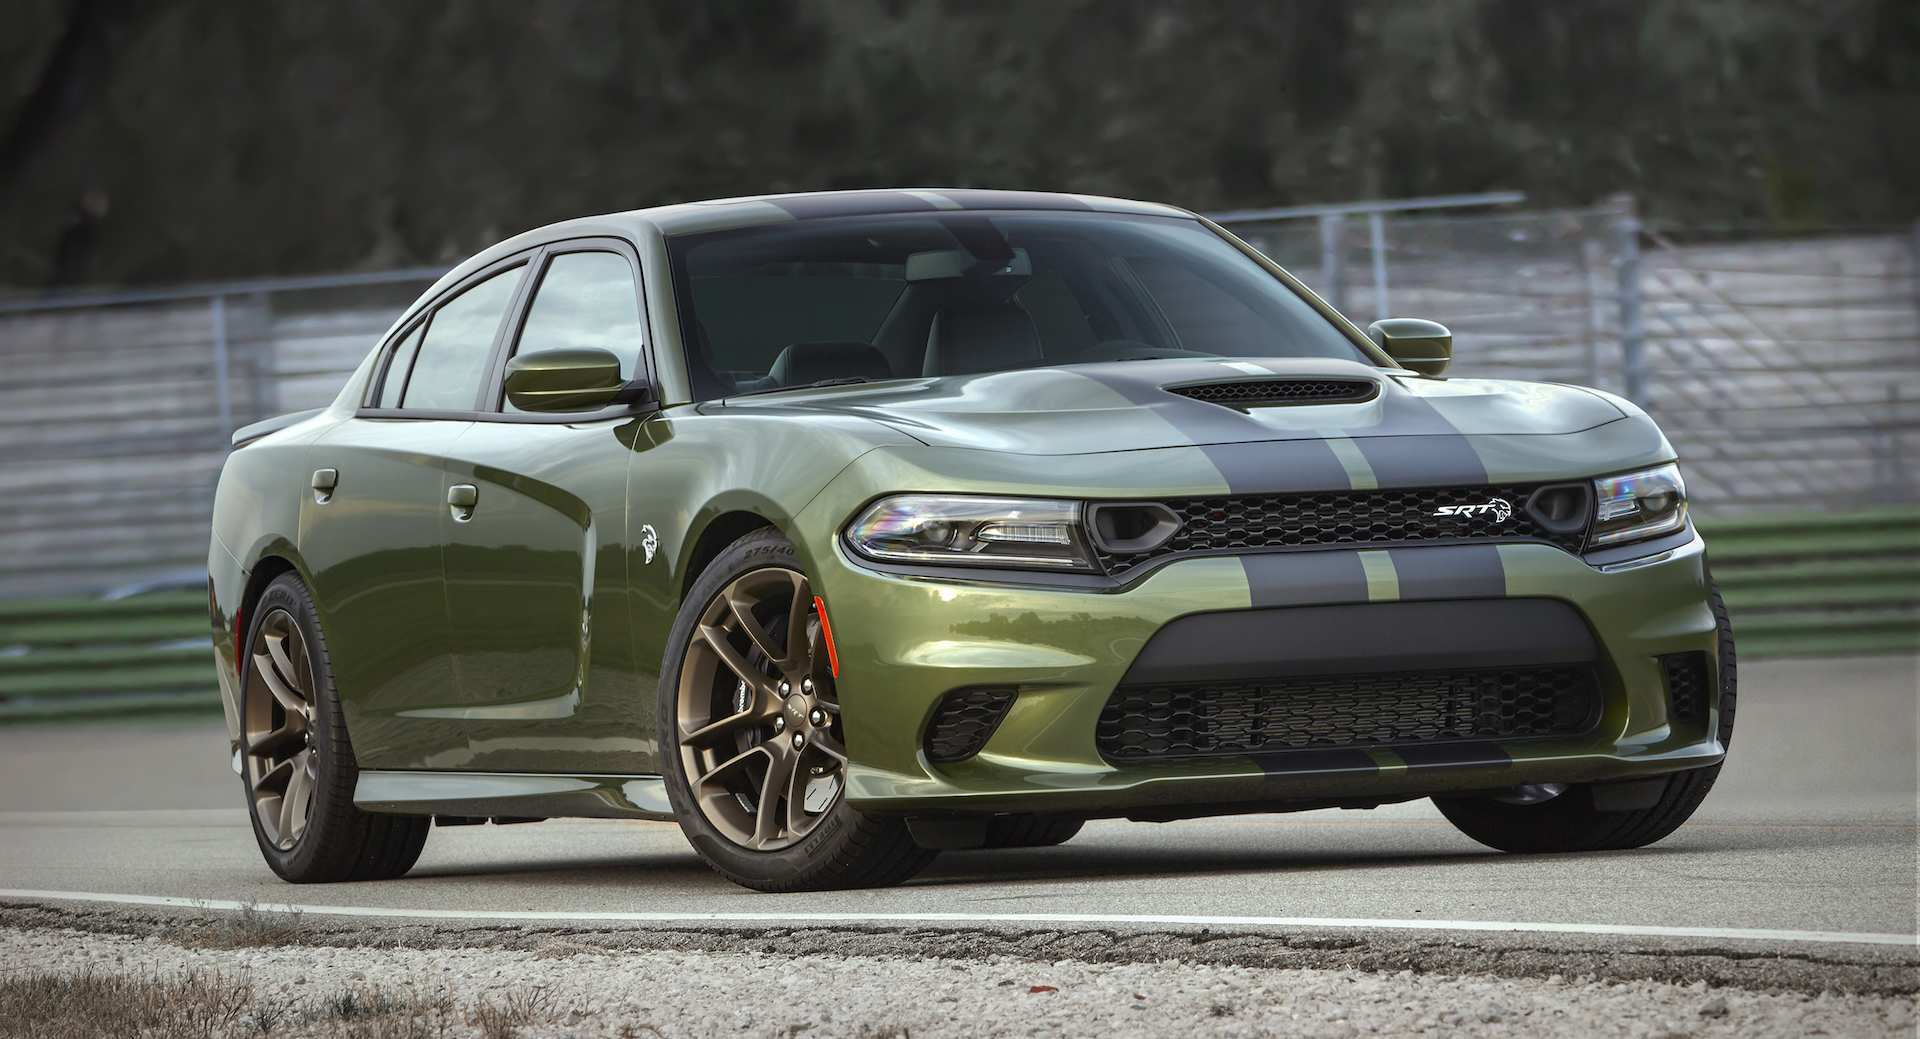 44 All New 2019 Dodge Charger Redesign